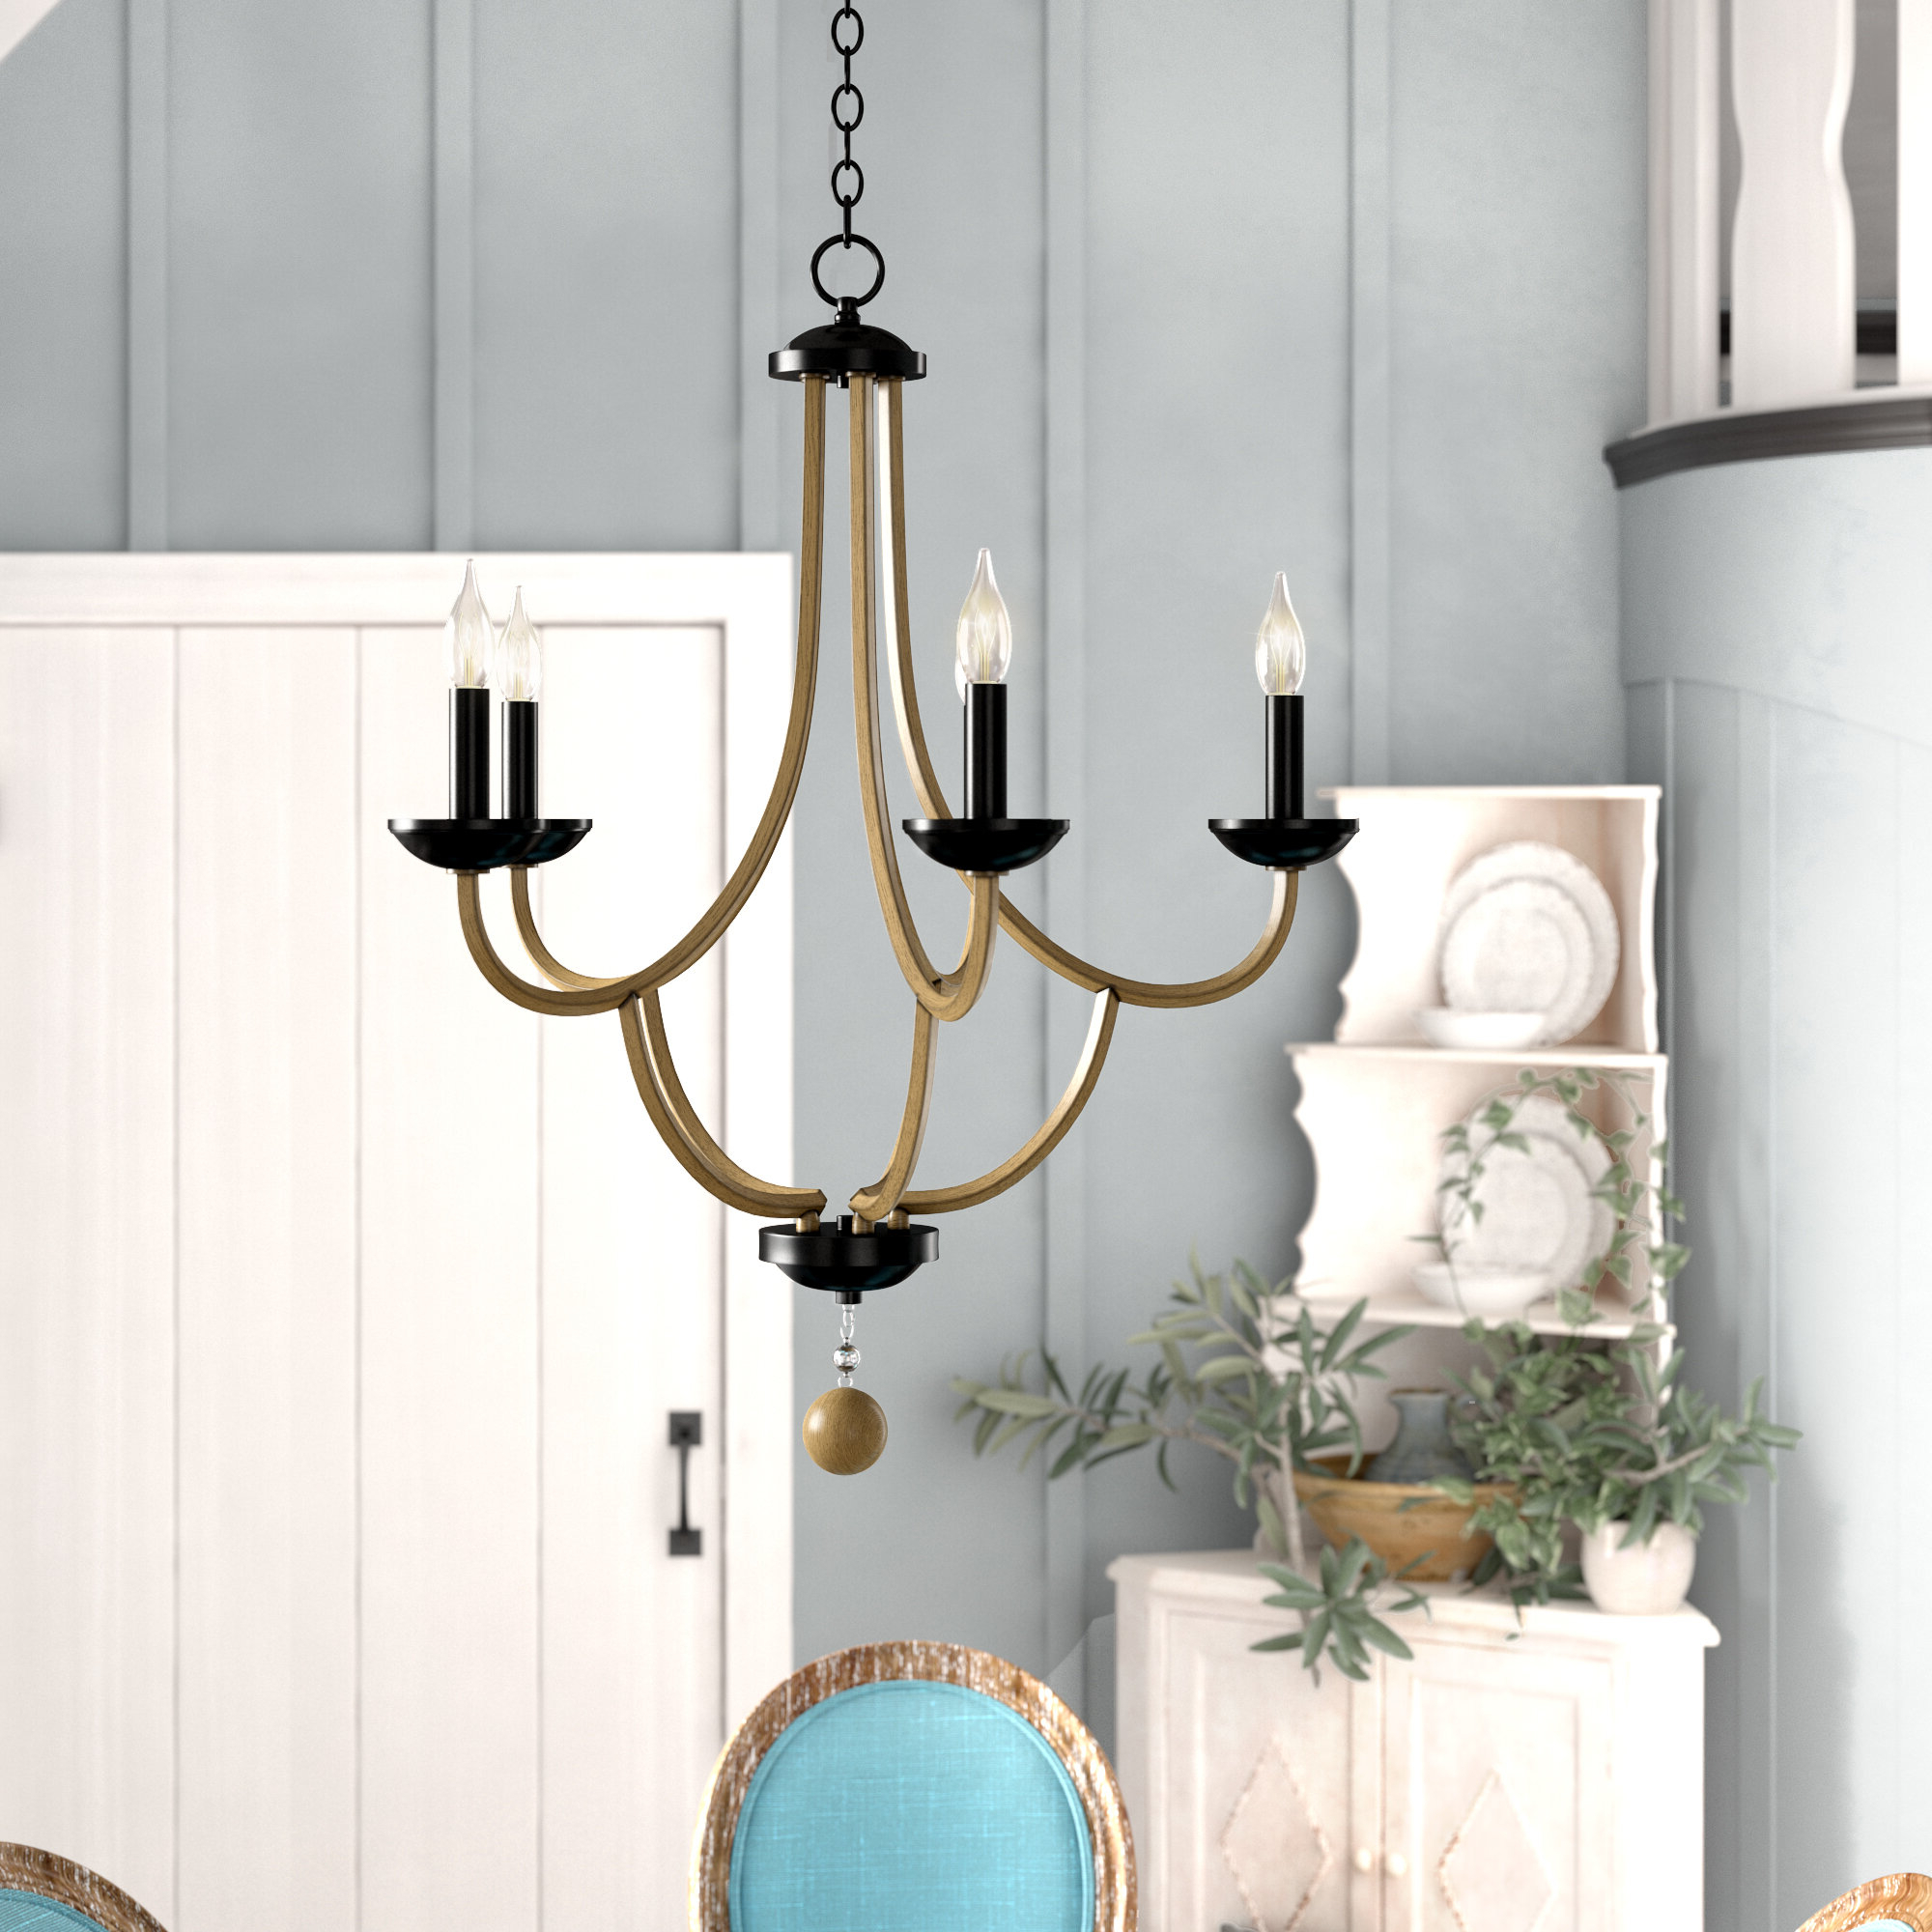 Shaylee 5 Light Candle Style Chandeliers With Regard To Popular Winget 5 Light Candle Style Chandelier (View 19 of 25)